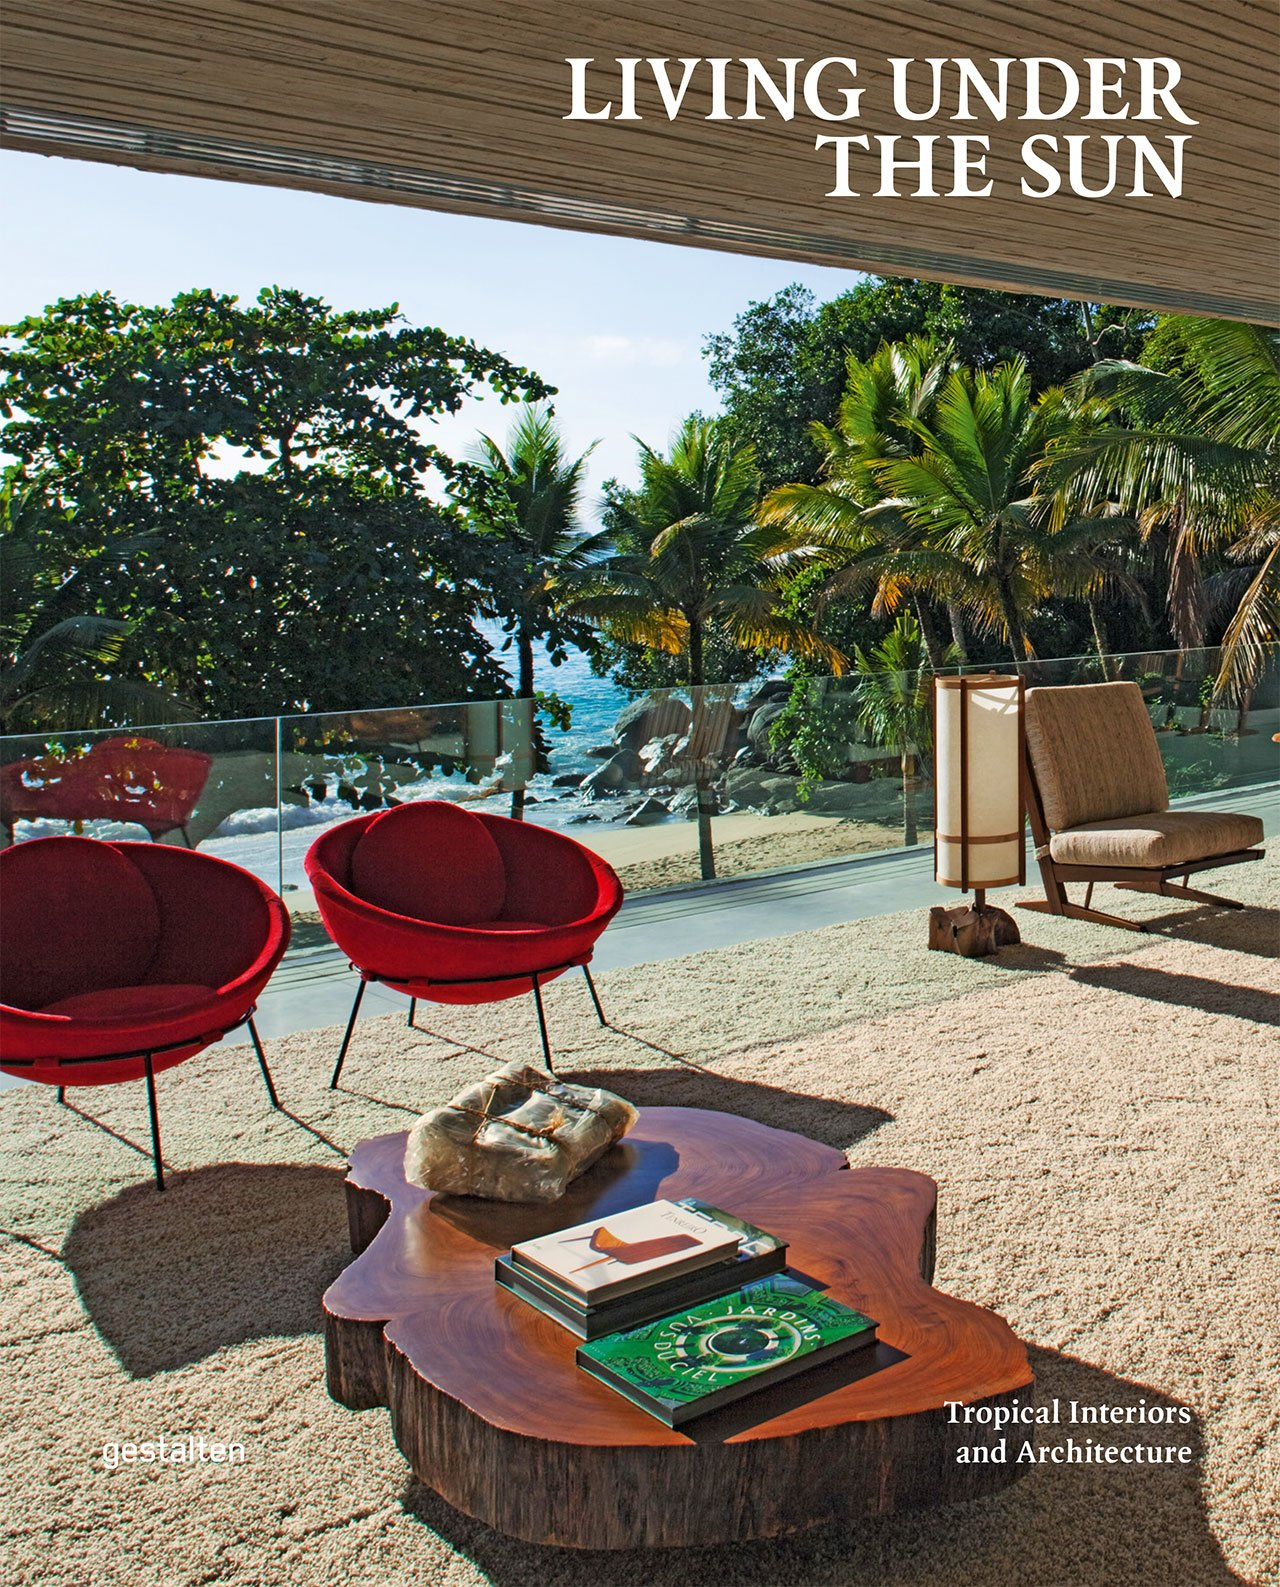 'Living under the sun' Book Cover © Gestalten 2016.